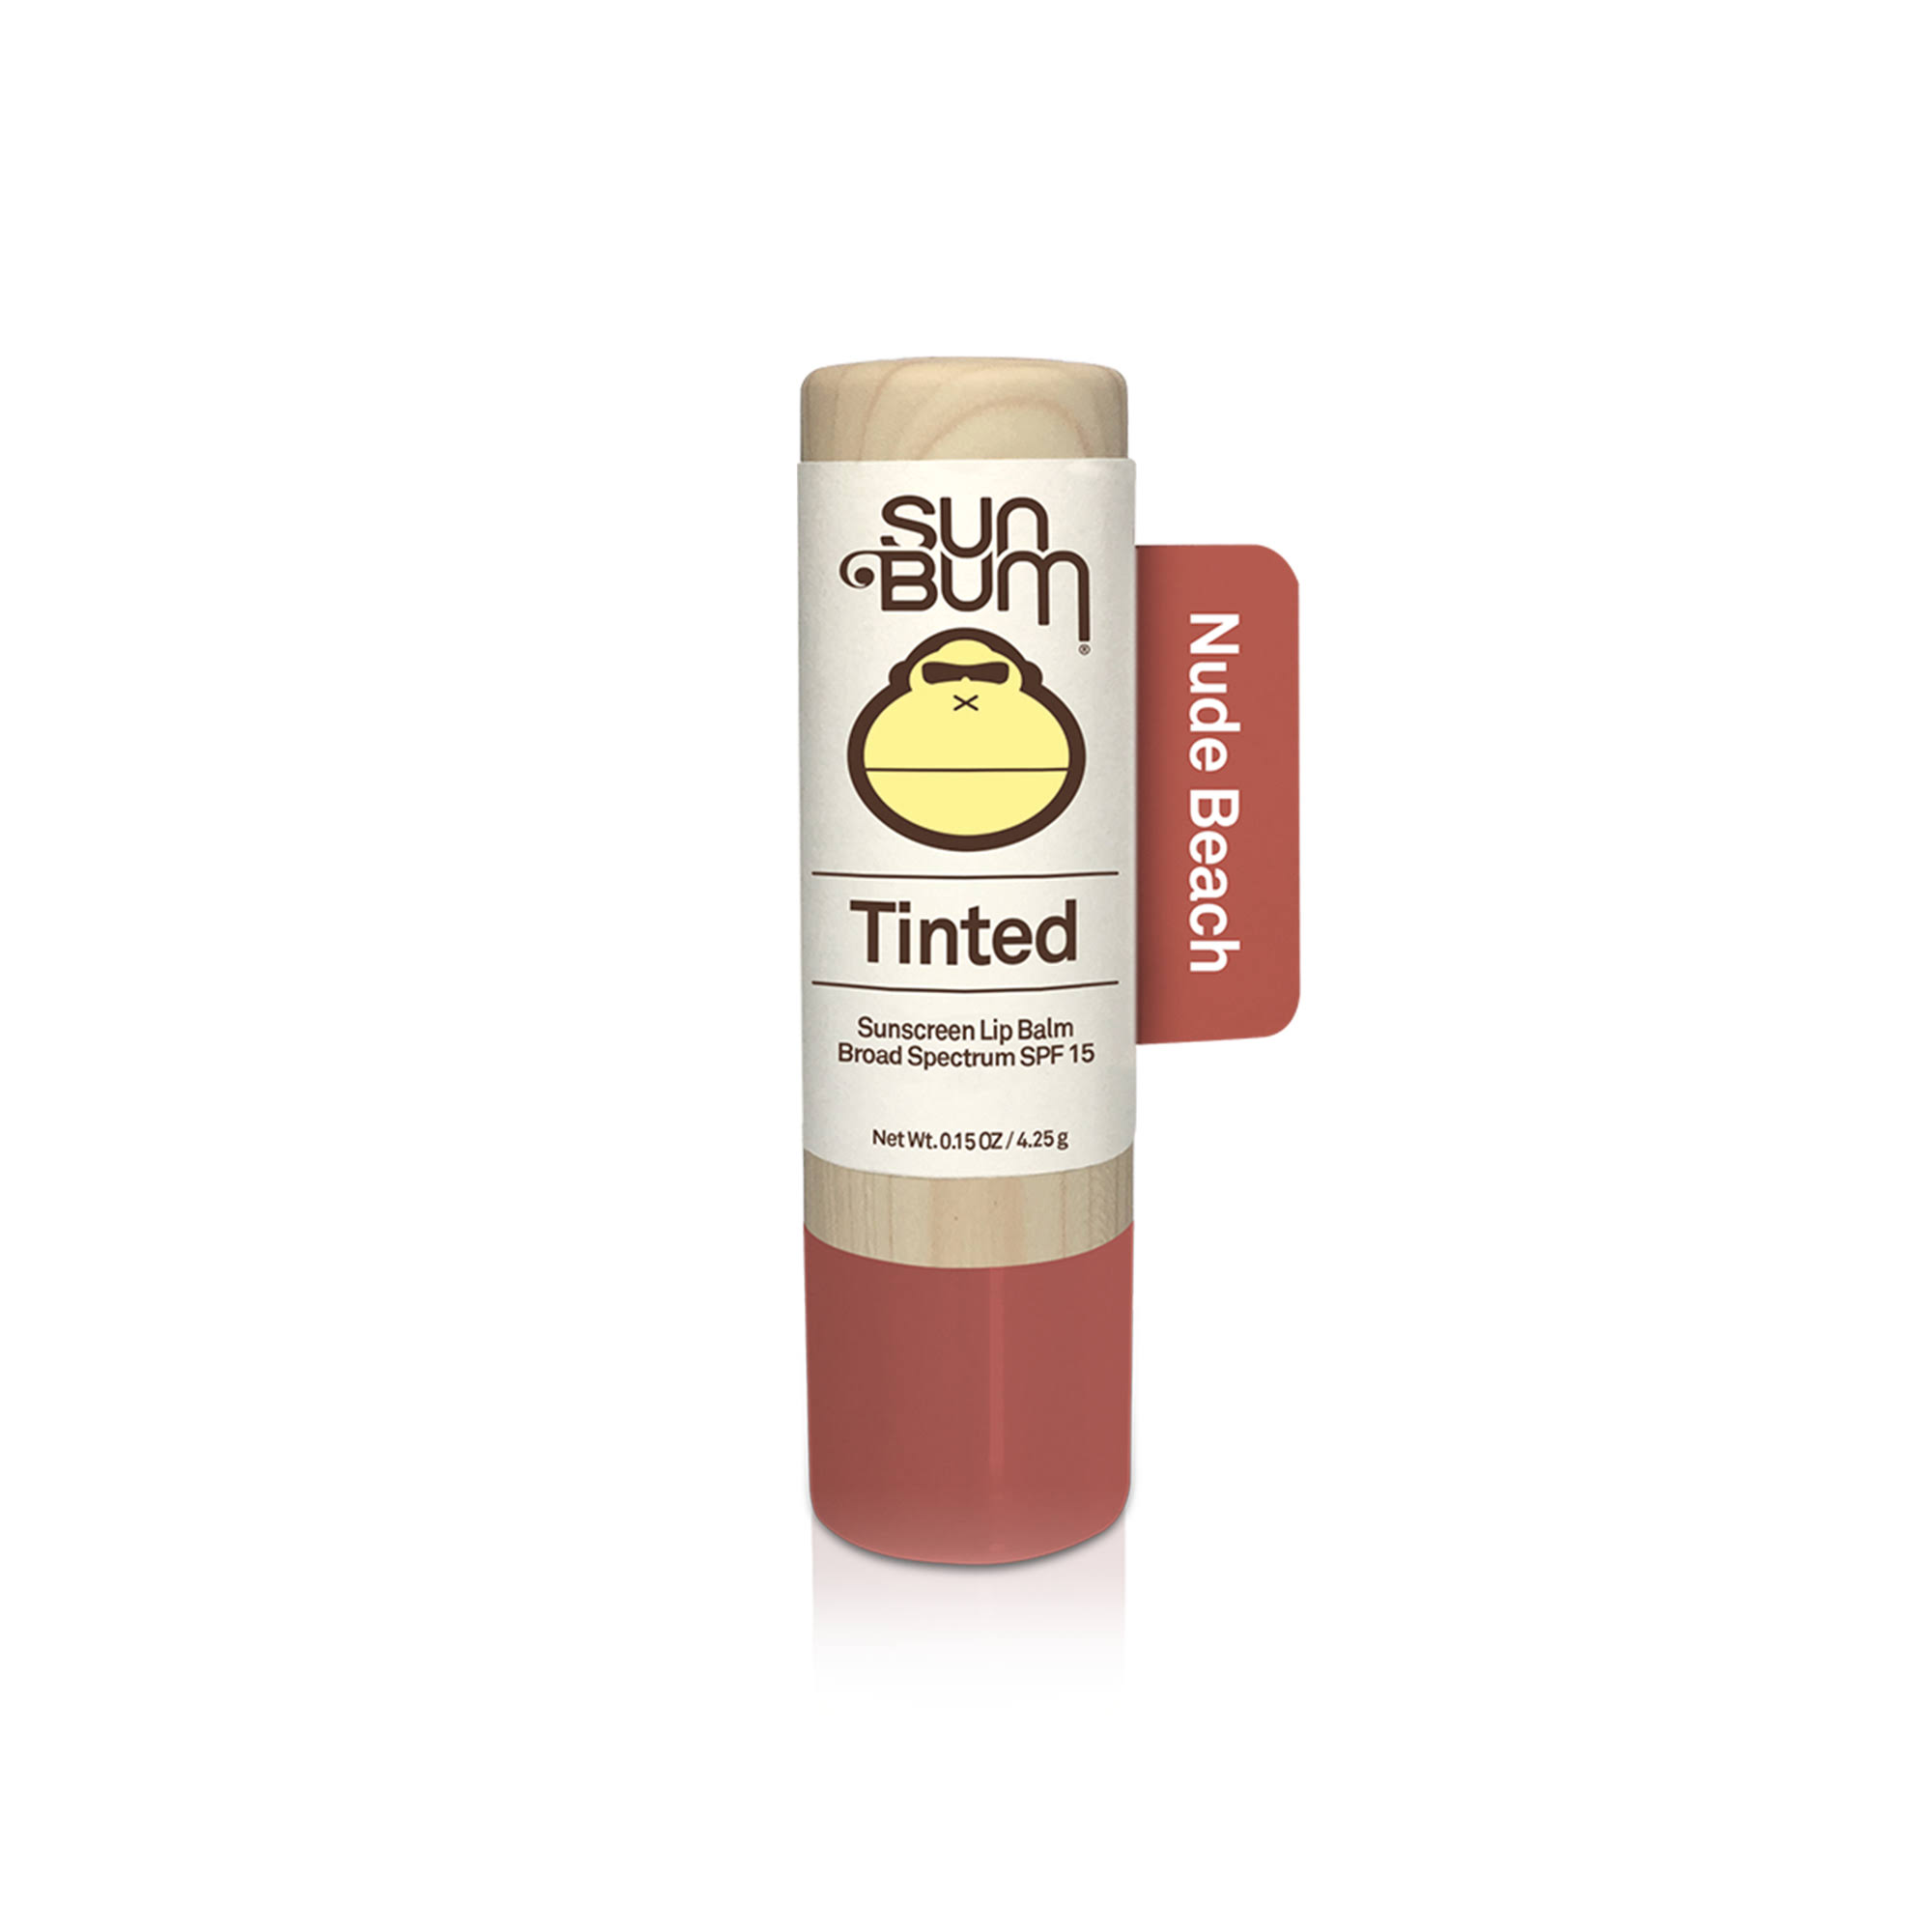 Sun Bum Tinted Lip Balm, Sunscreen, Nude Beach, Broad Spectrum SPF 15 - 0.15 oz